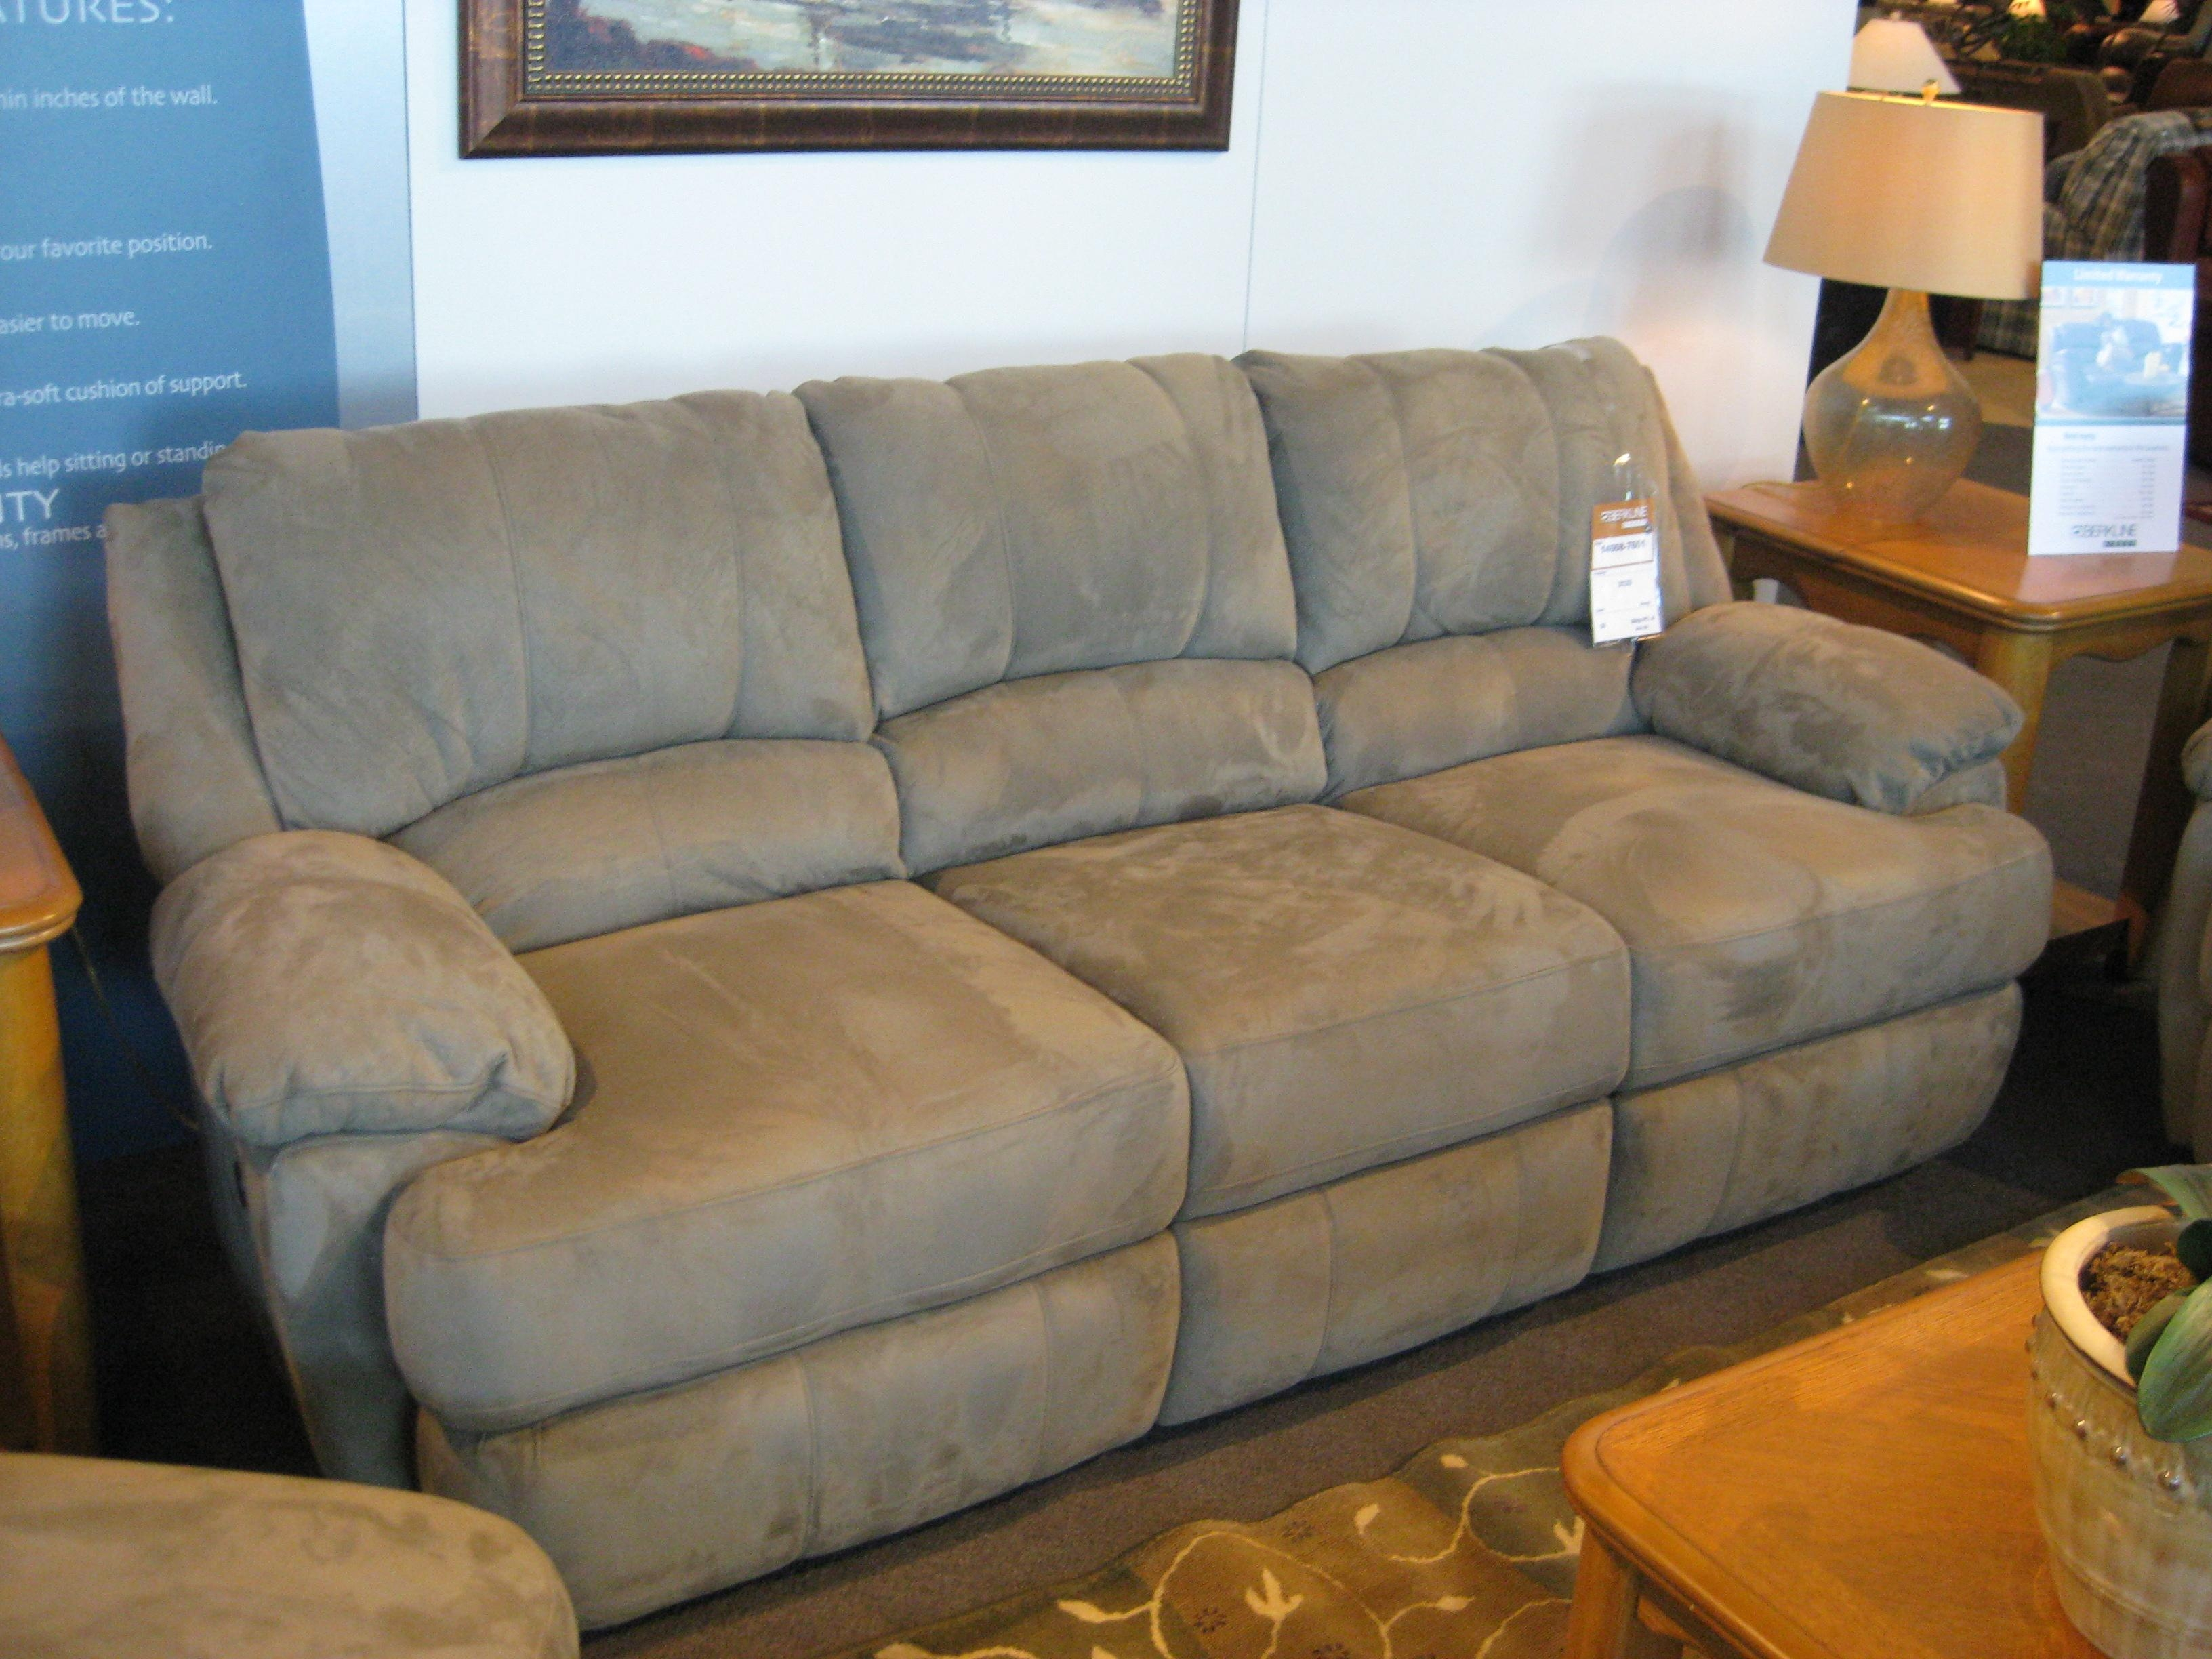 Stunning Leather Sectional Sofa With Power Recliner 17 On Berkline Inside Berkline Sofas (Image 19 of 20)